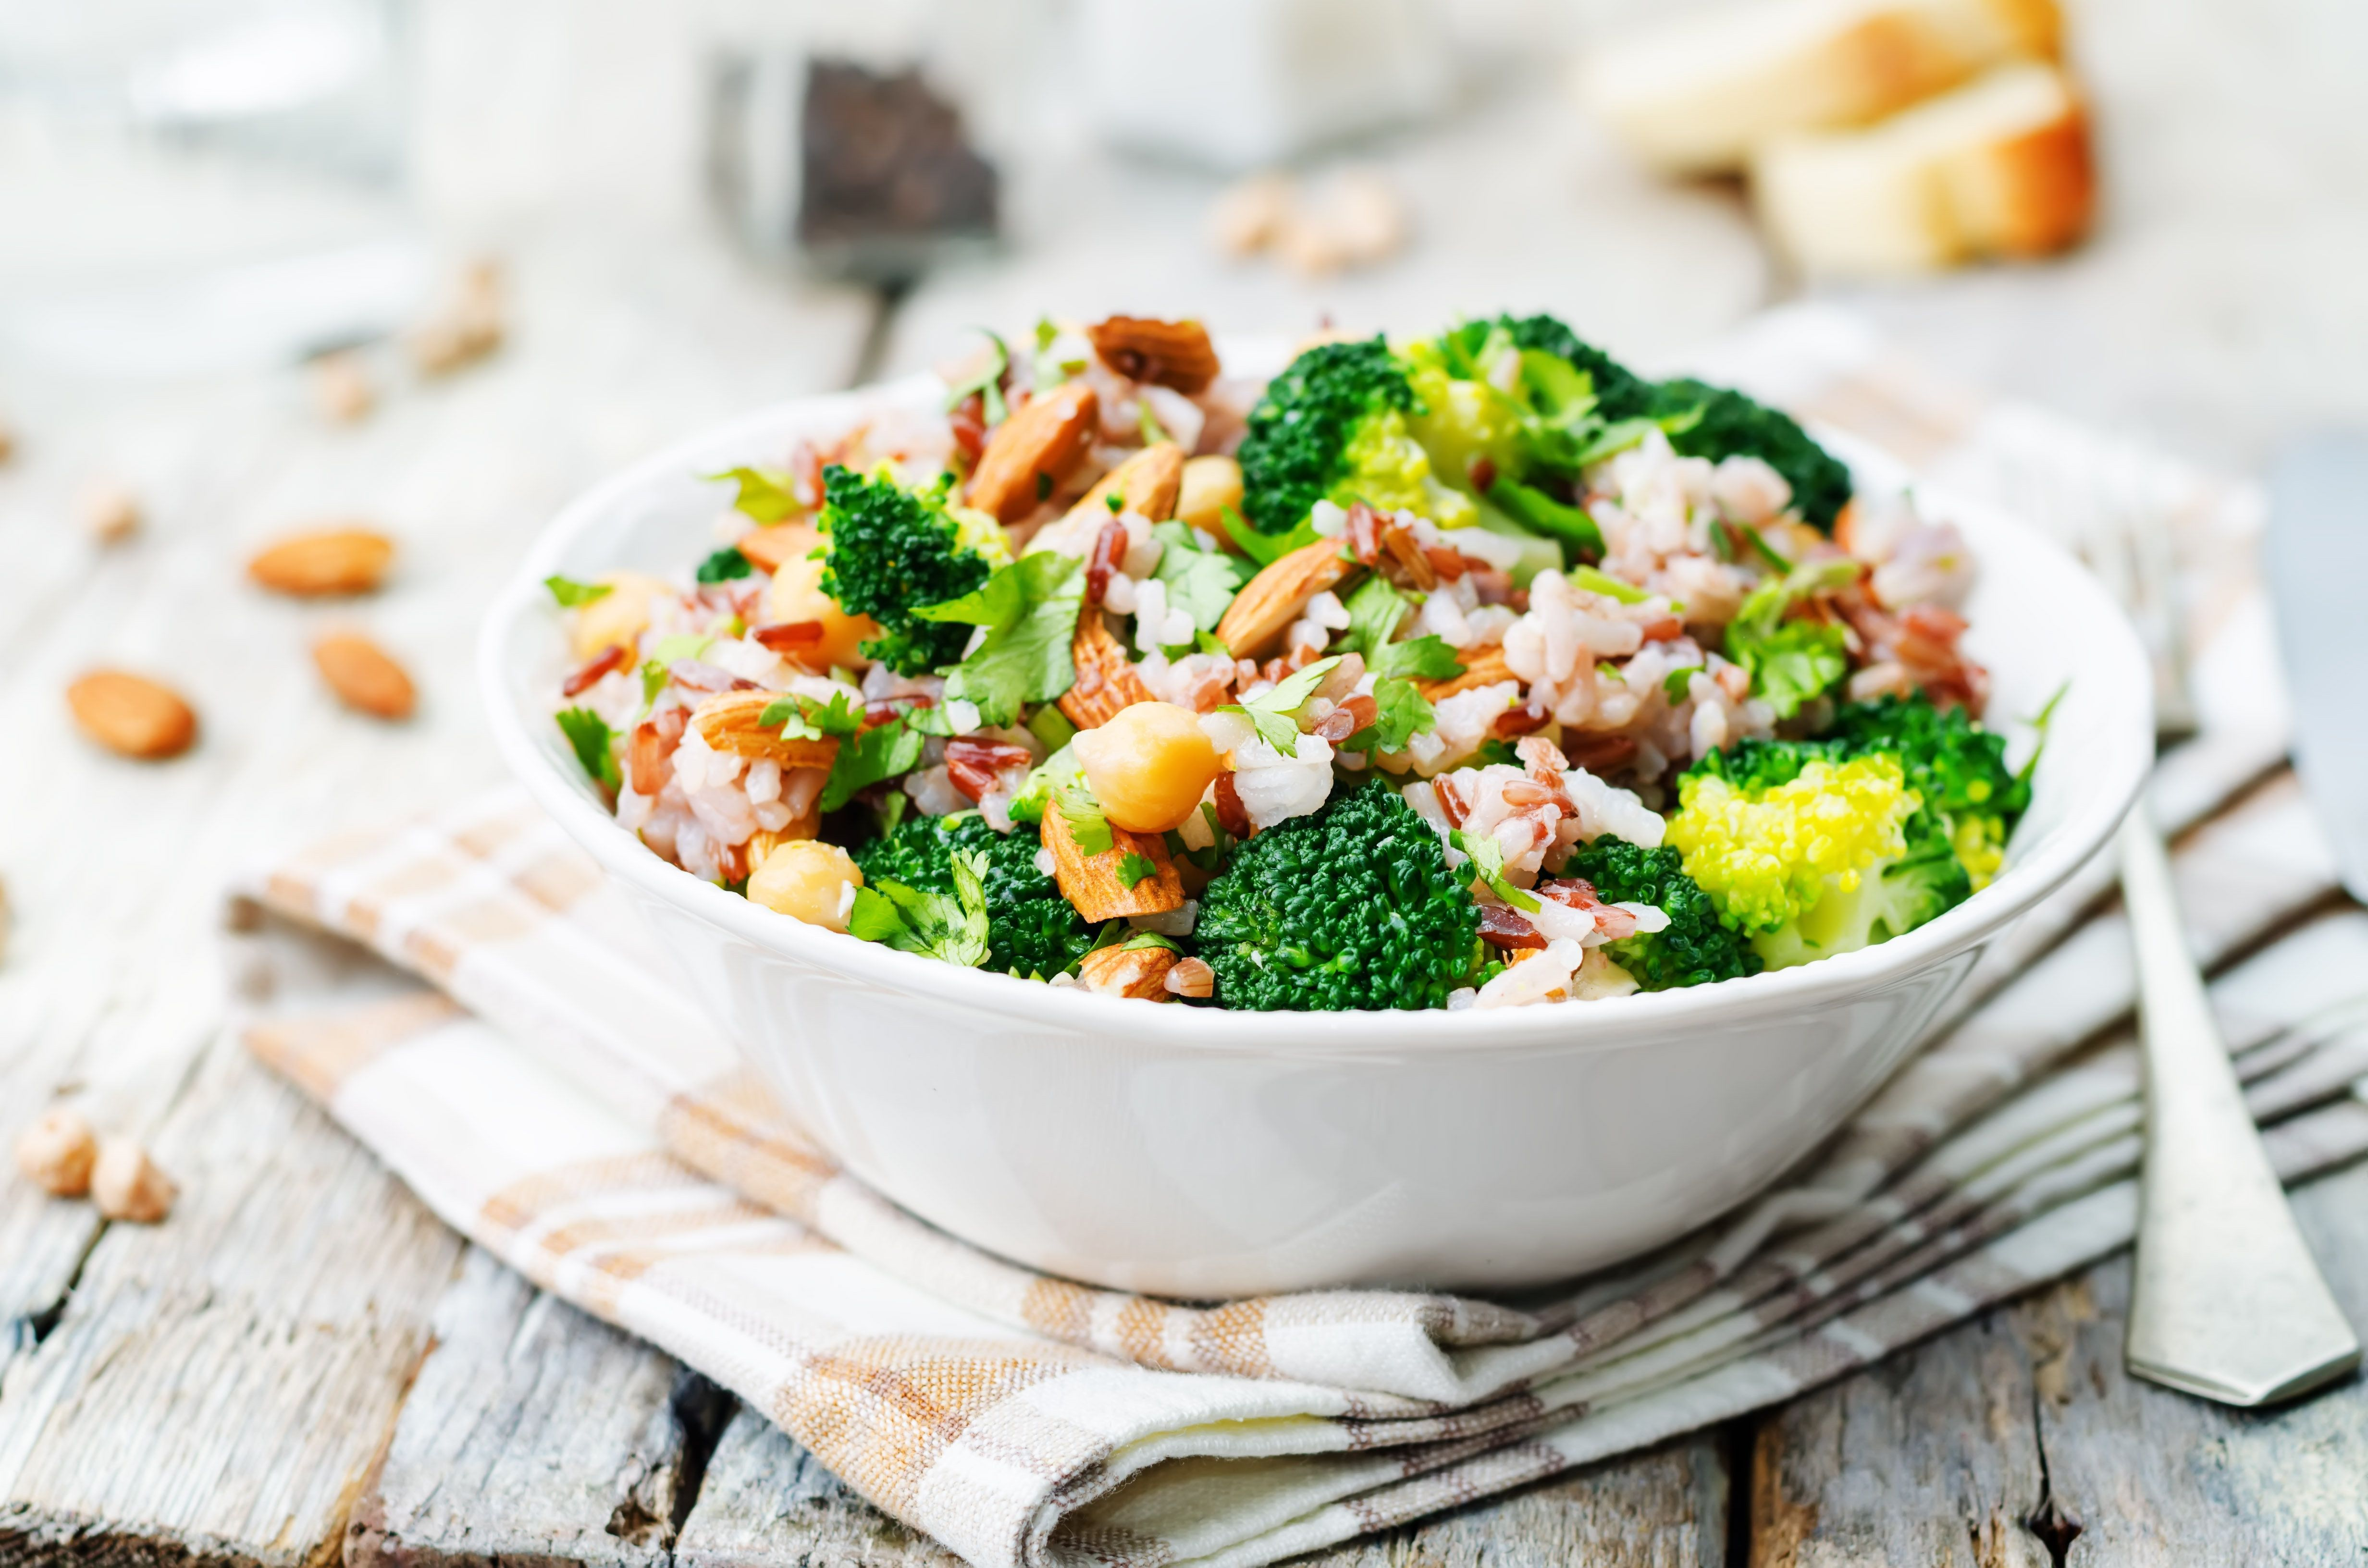 Vegetarian Diets 'Twice As Effective' For Weight Loss Than Eating